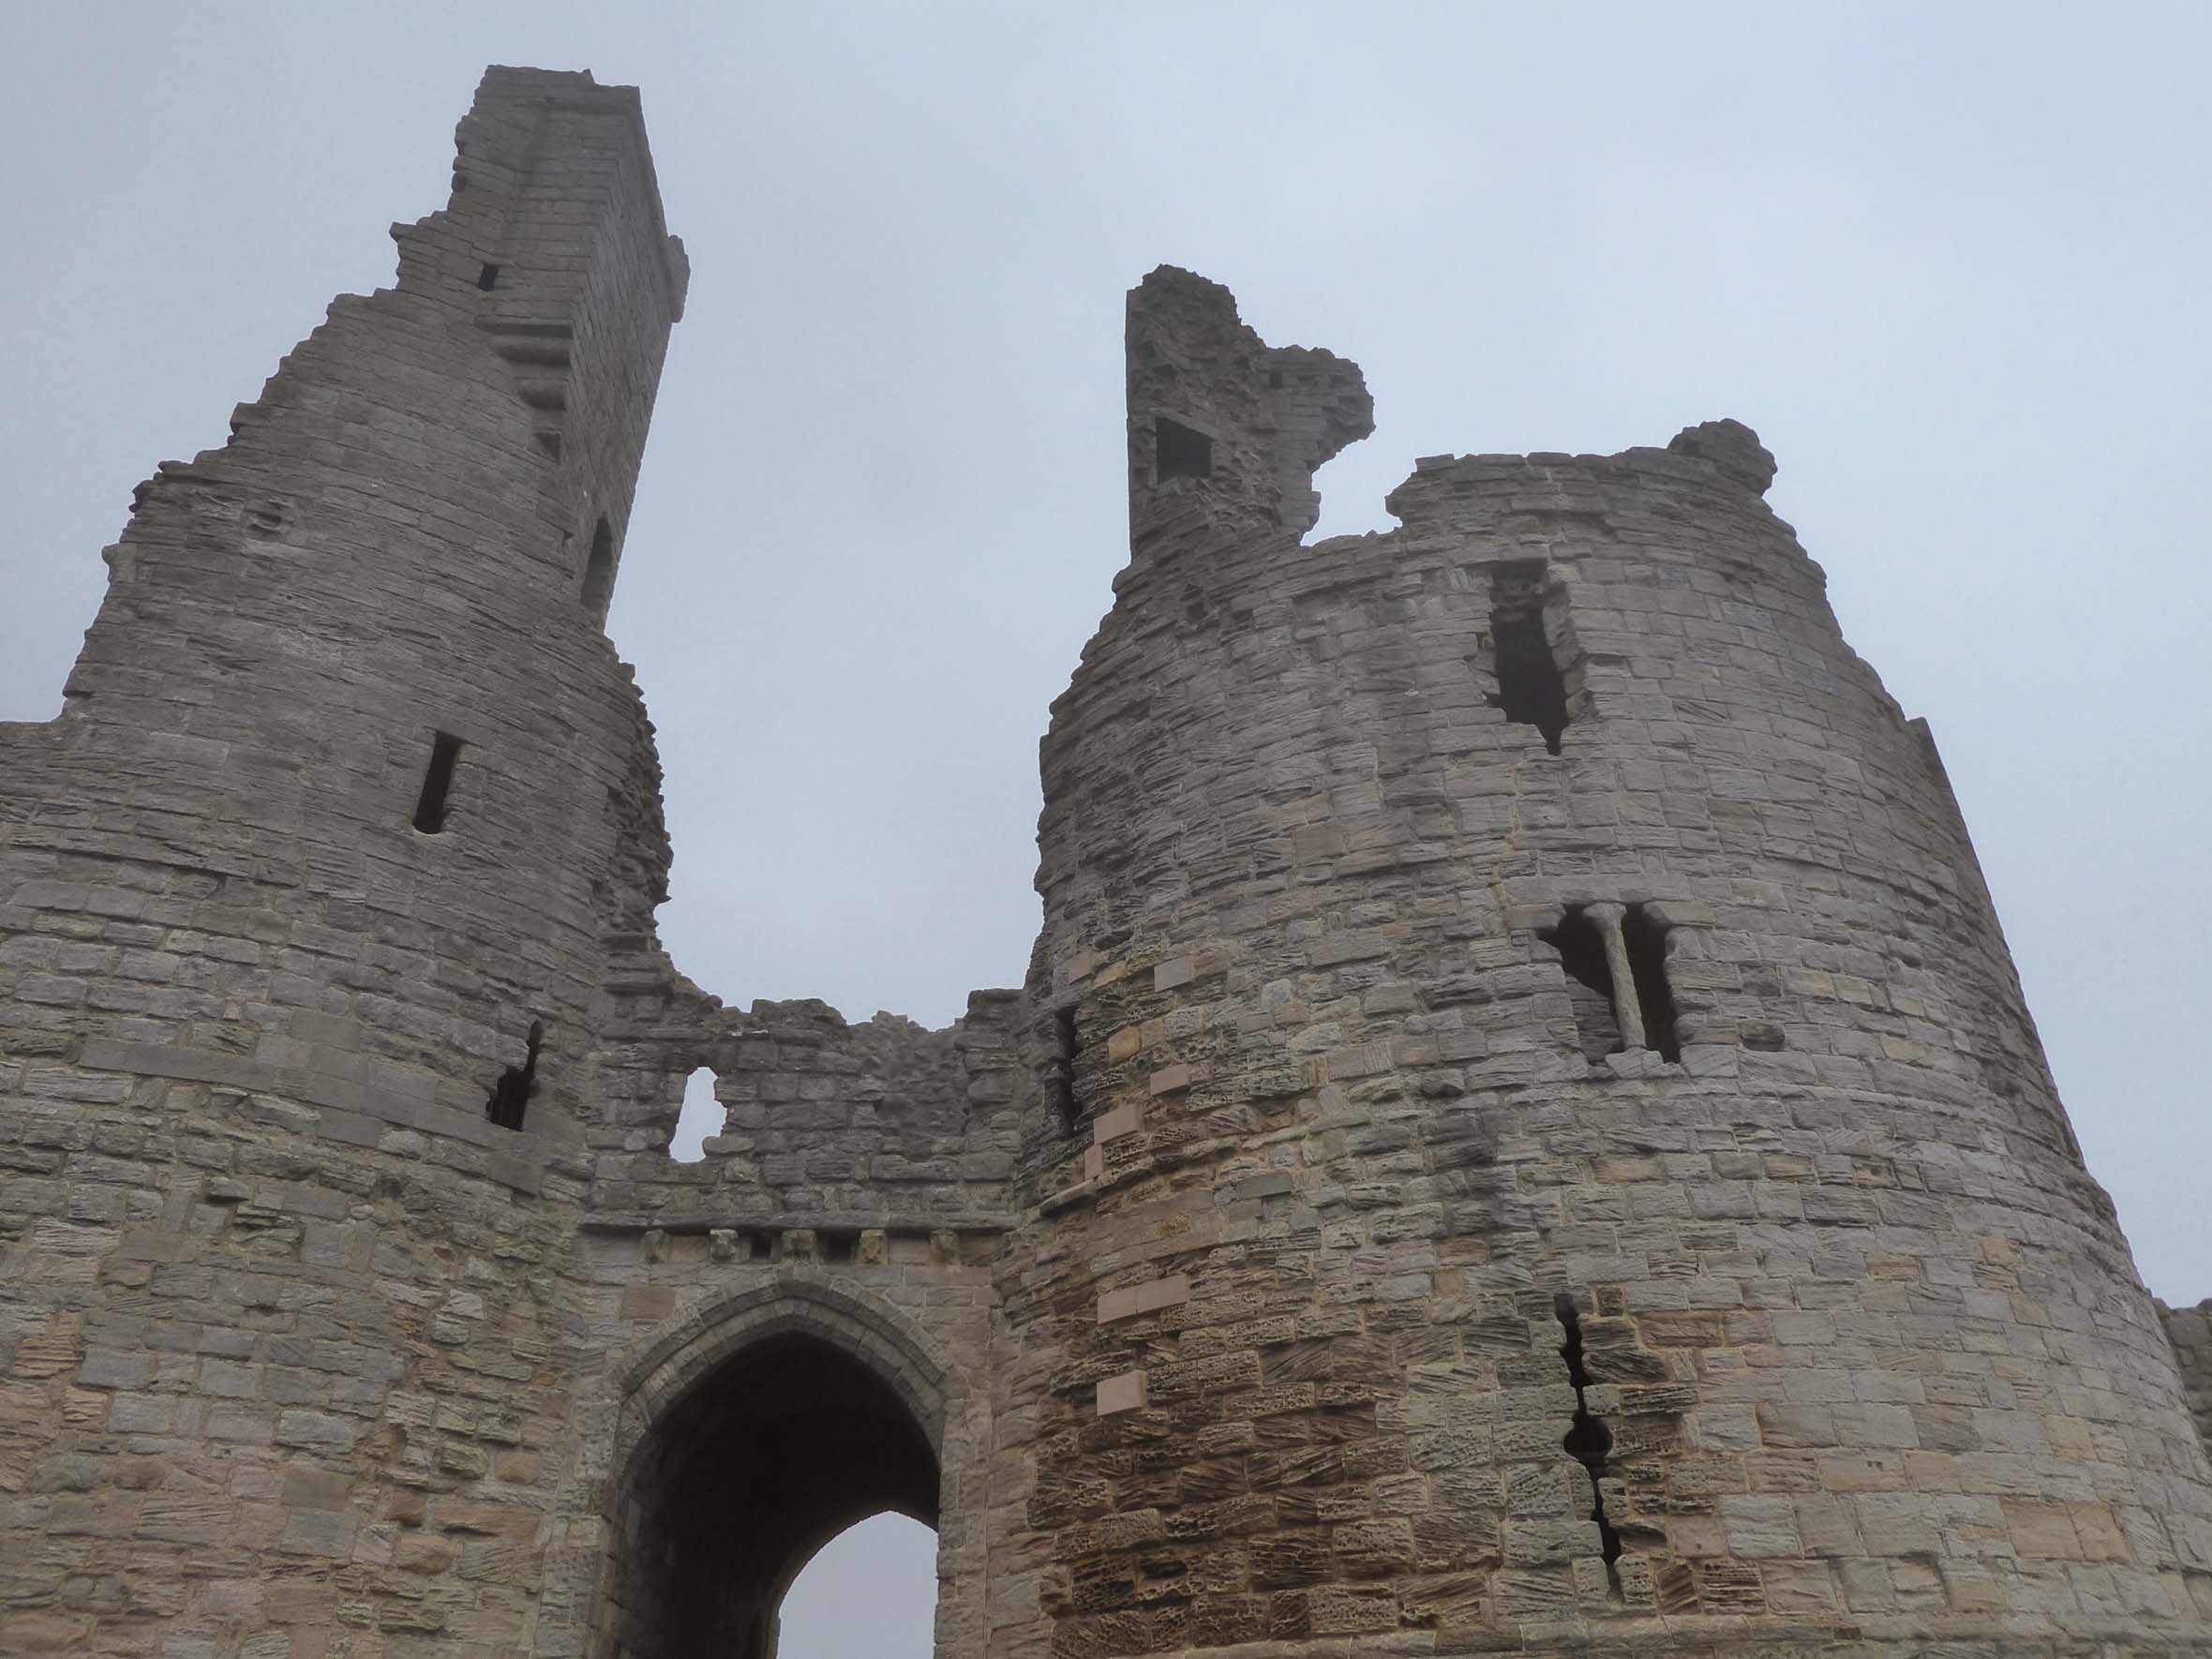 Castle gatehouse, partly ruined